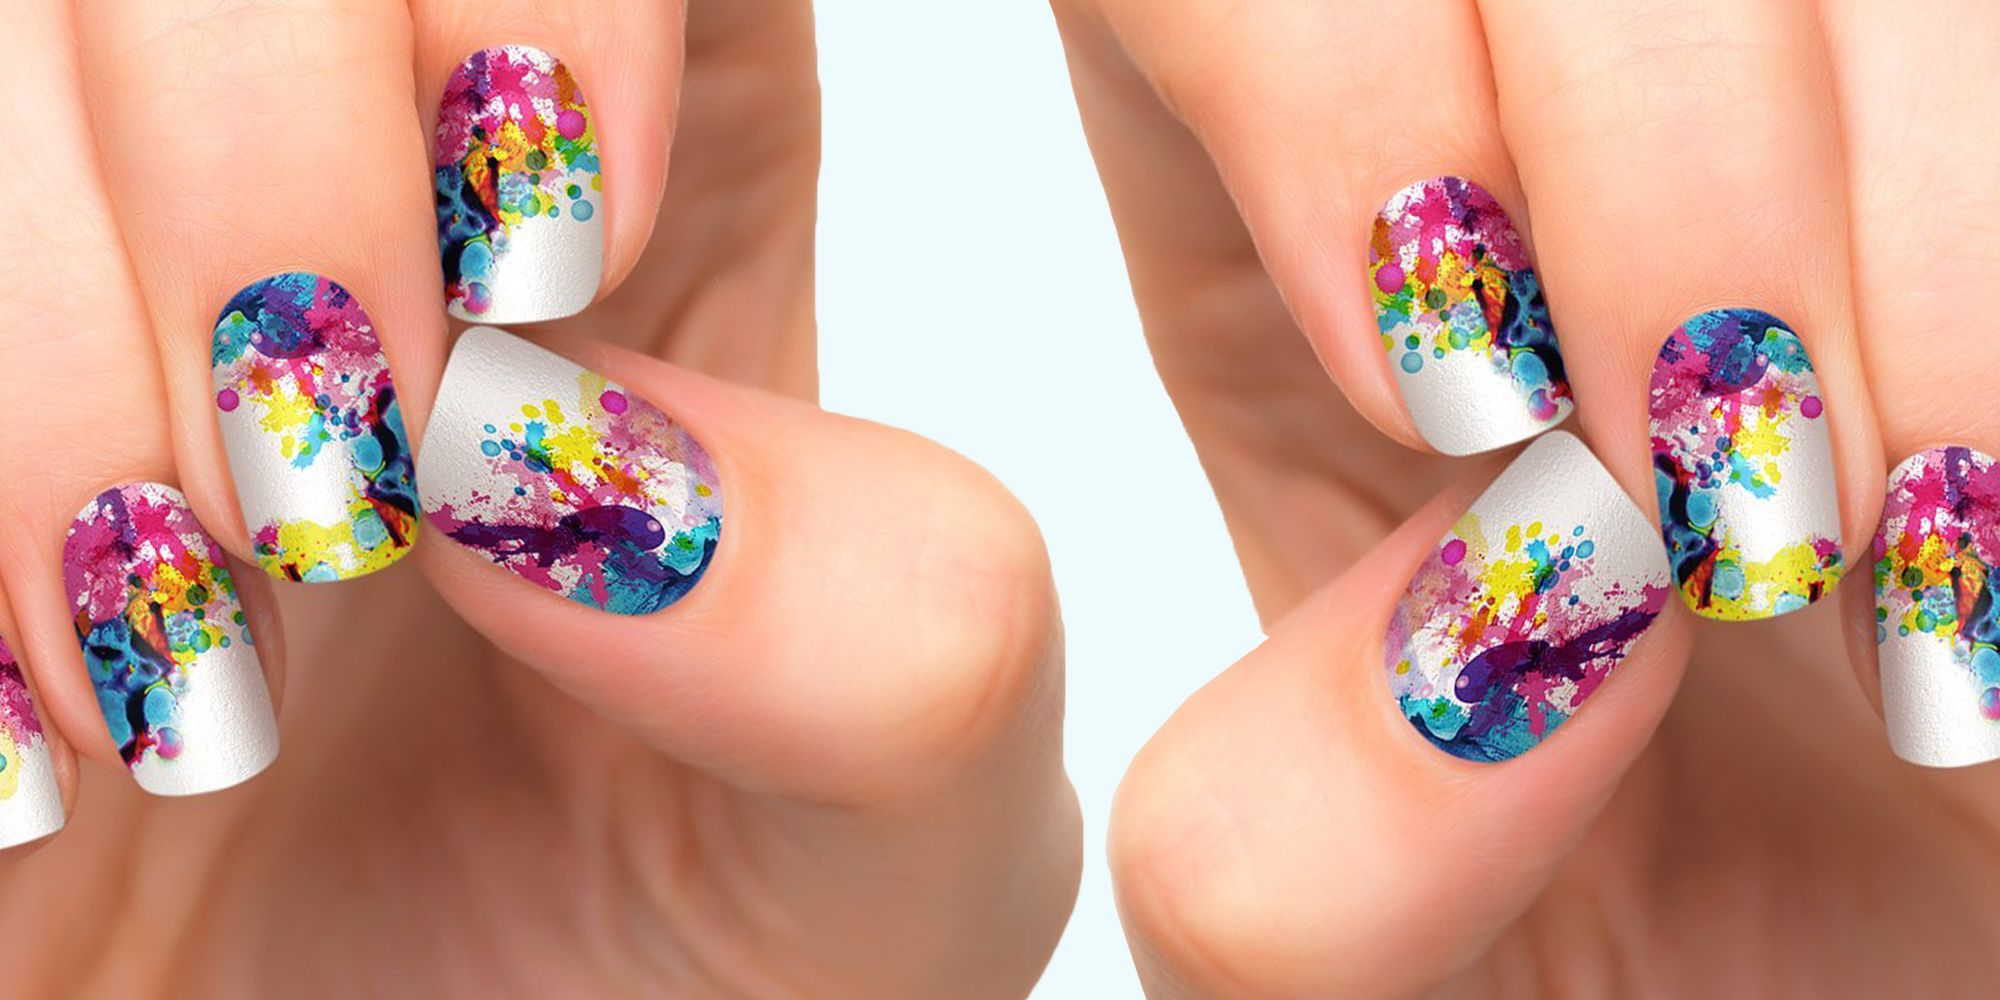 9 Best Nail Stickers for Colorful, Fun Nails 2018 - Easy to Use Nail ...